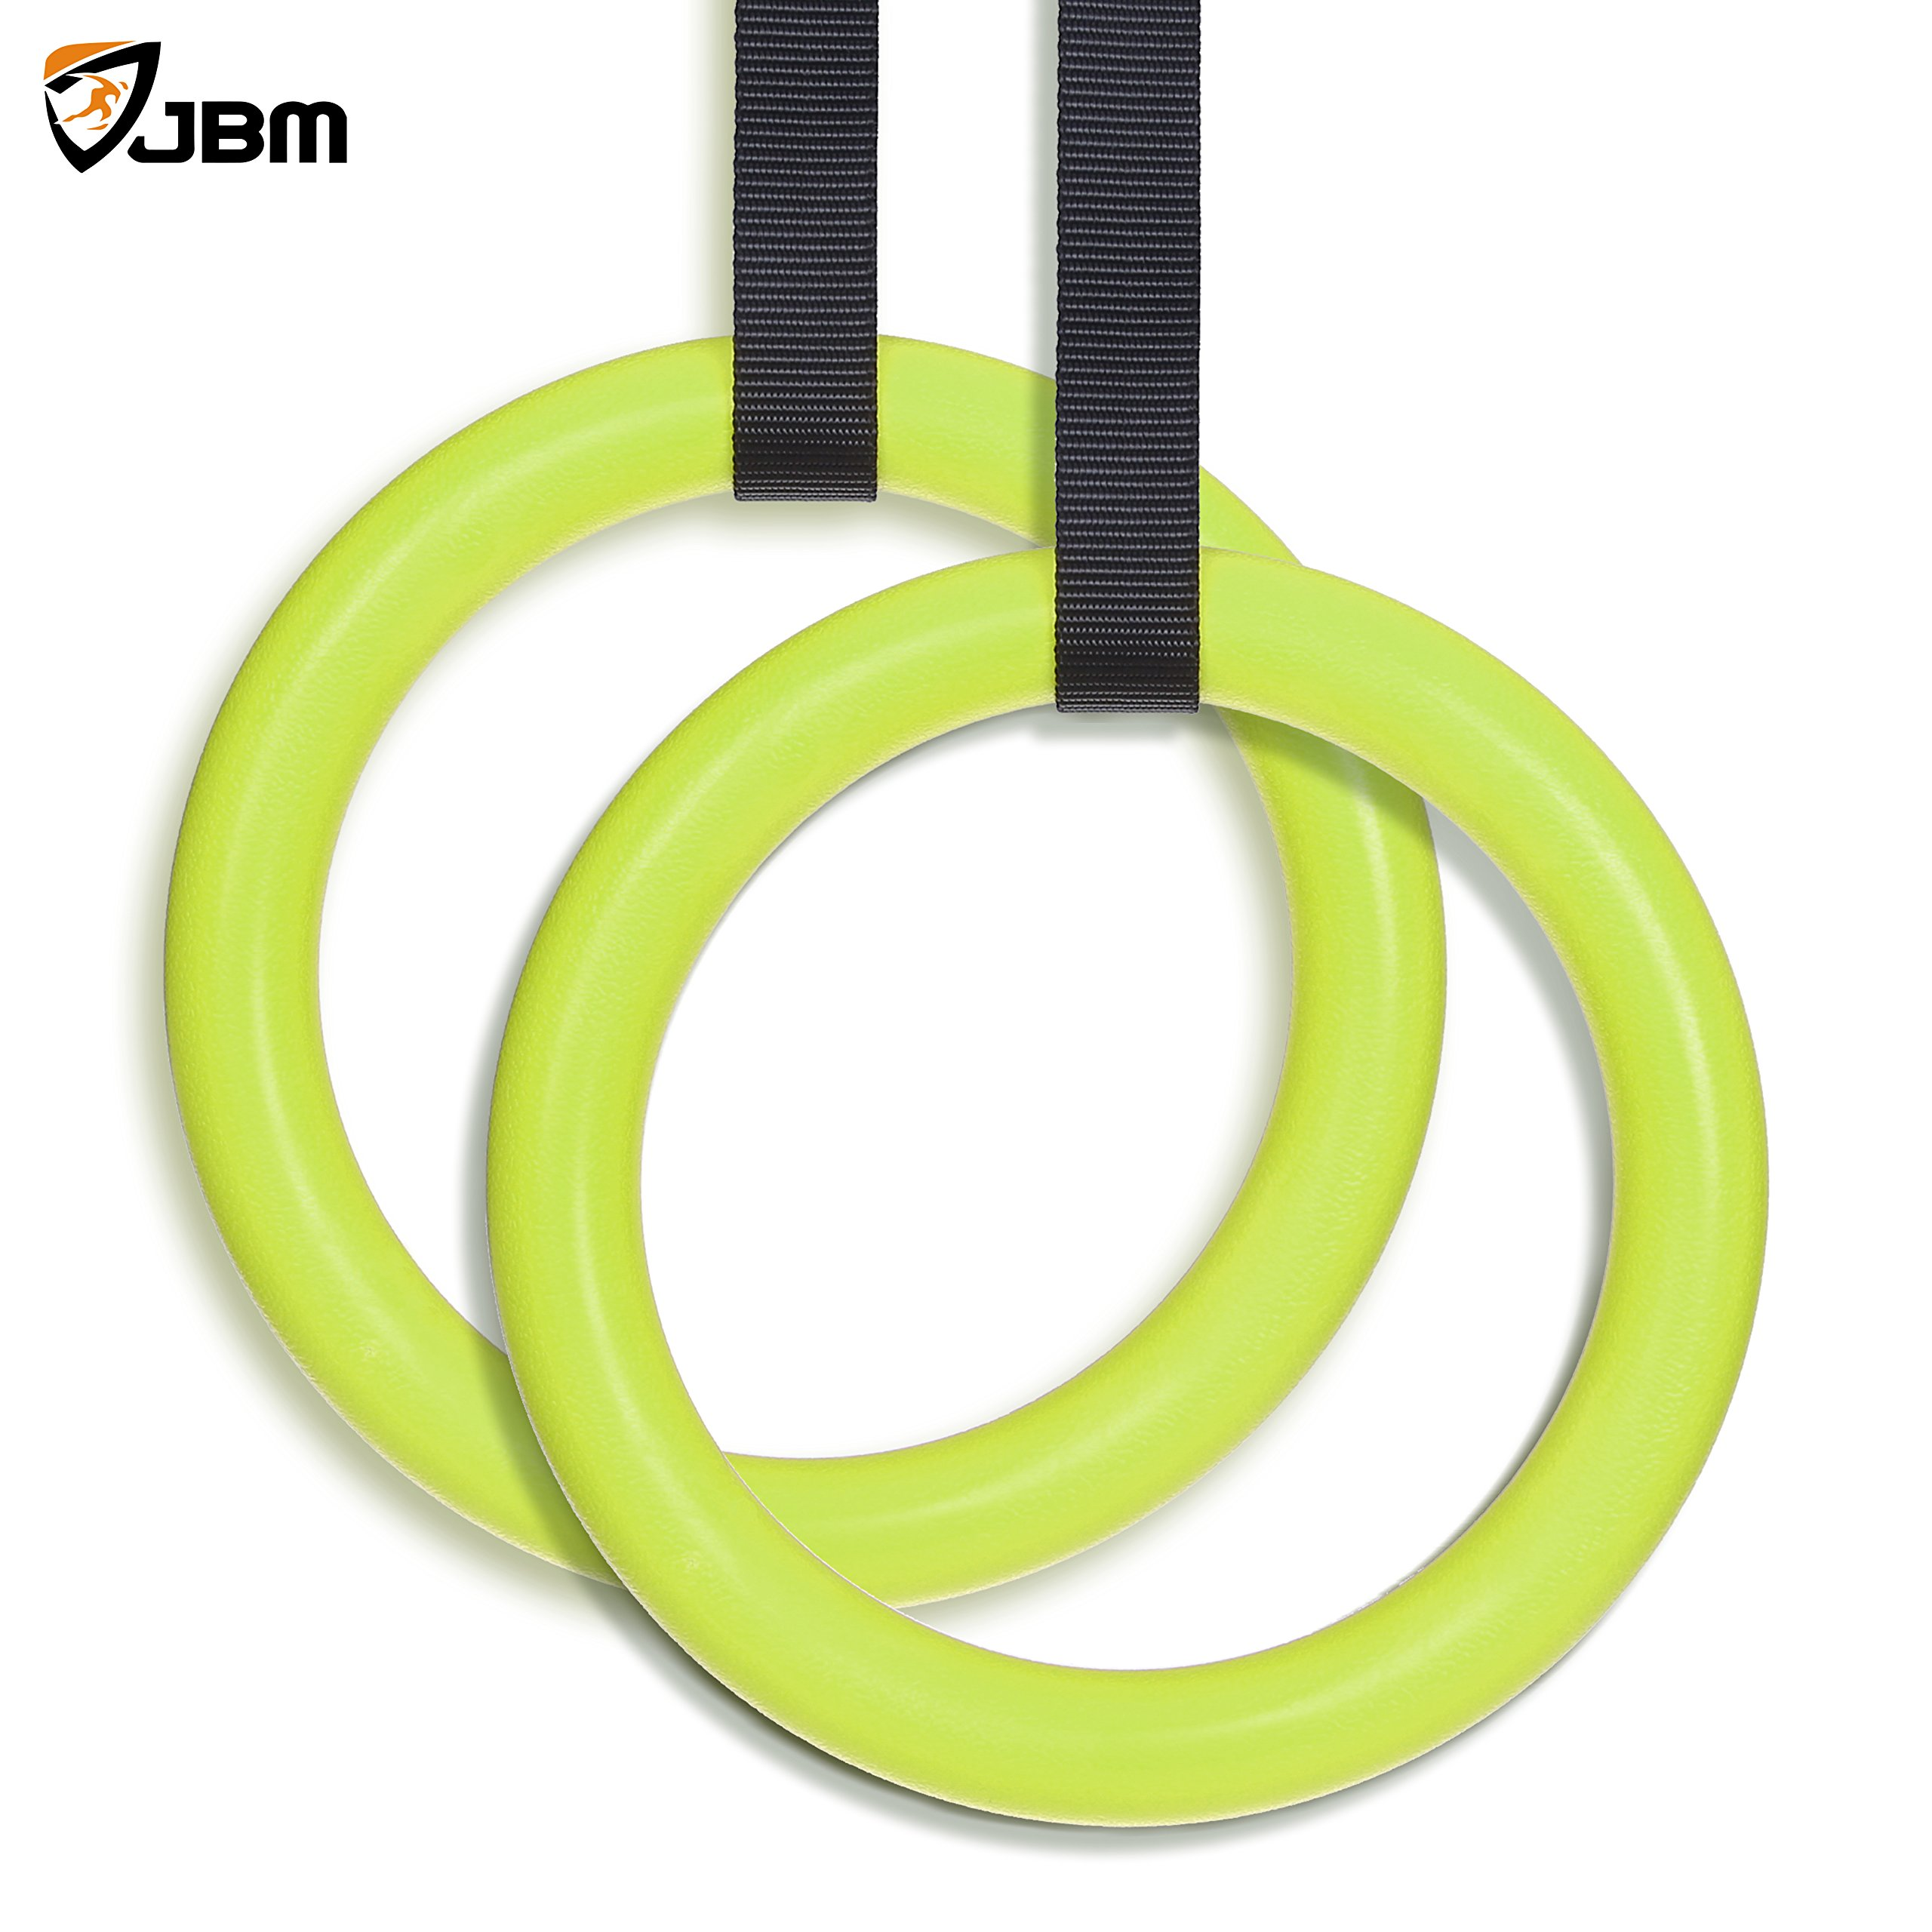 up pull helpful for customer straps exercise rated fitness rings pcr amazon jbm com adjustable gymnastics training with organized in reviews best crossfit